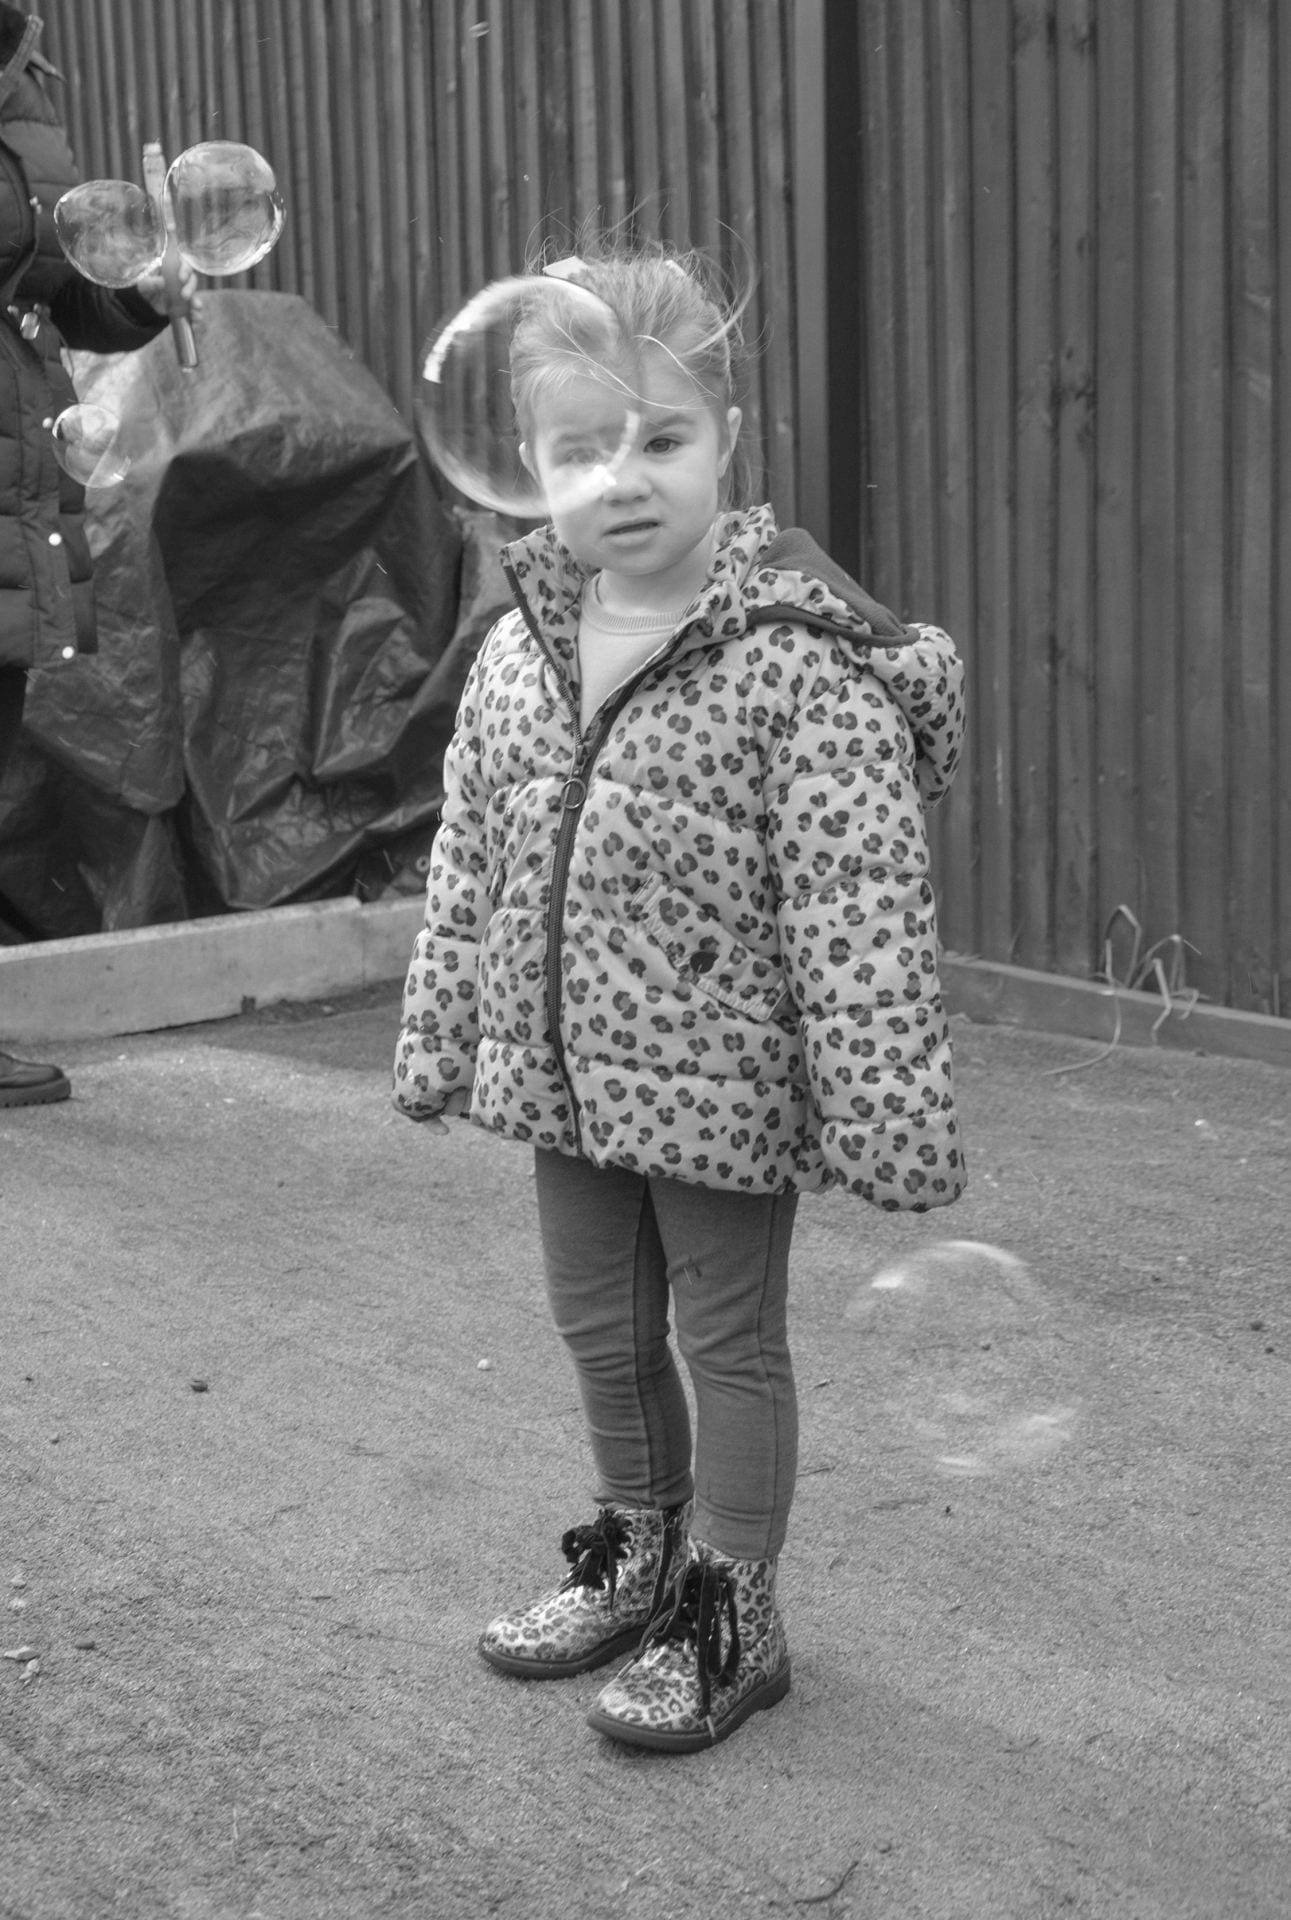 Black and white photograph of a bubble in front of a child's face.